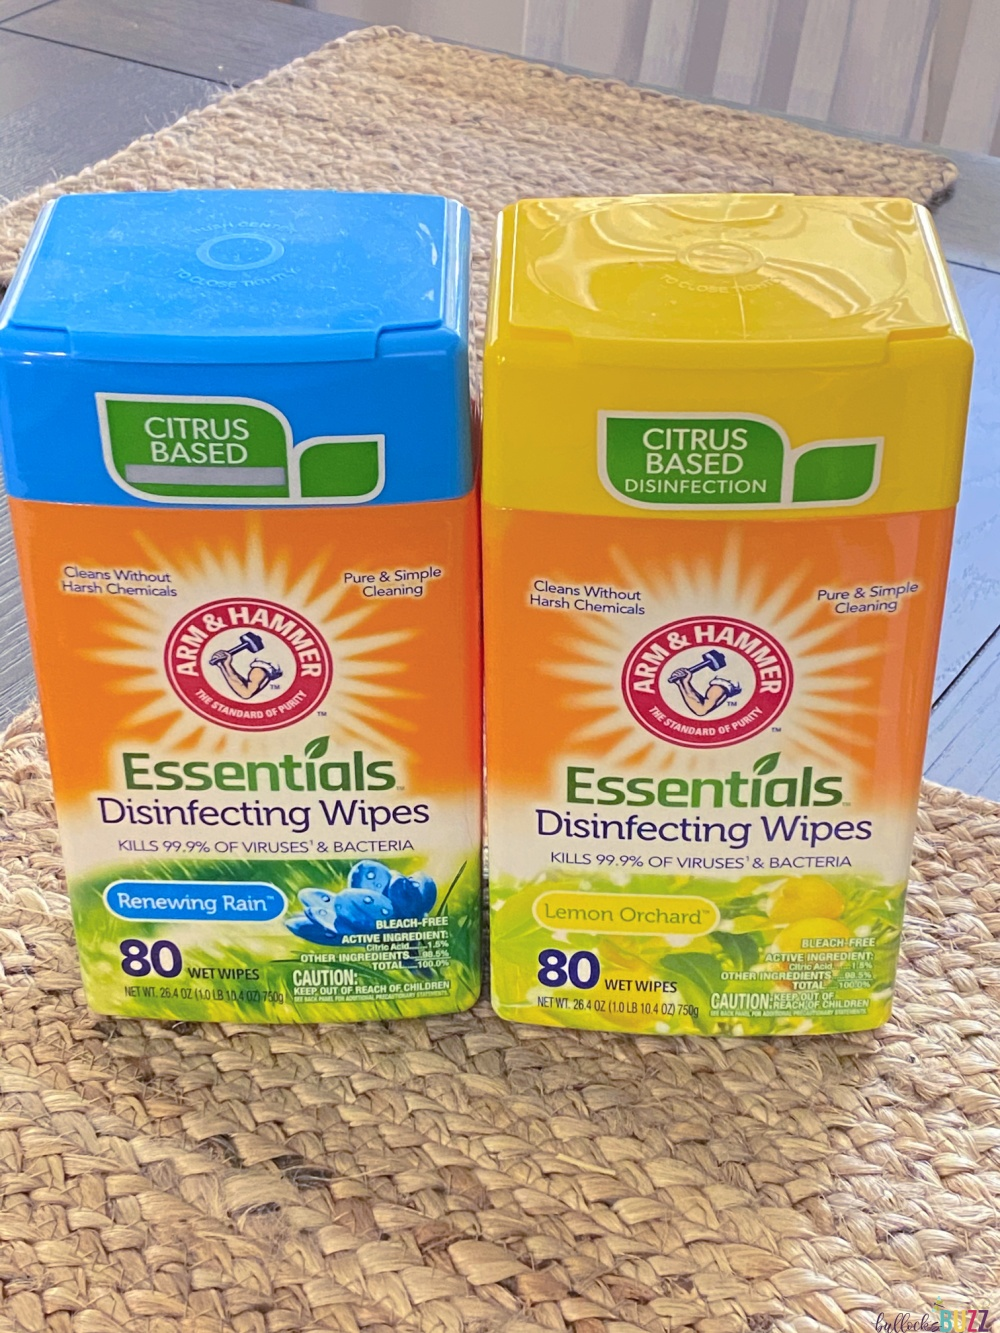 Arm and Hammer disinfecting wipes in containers on table